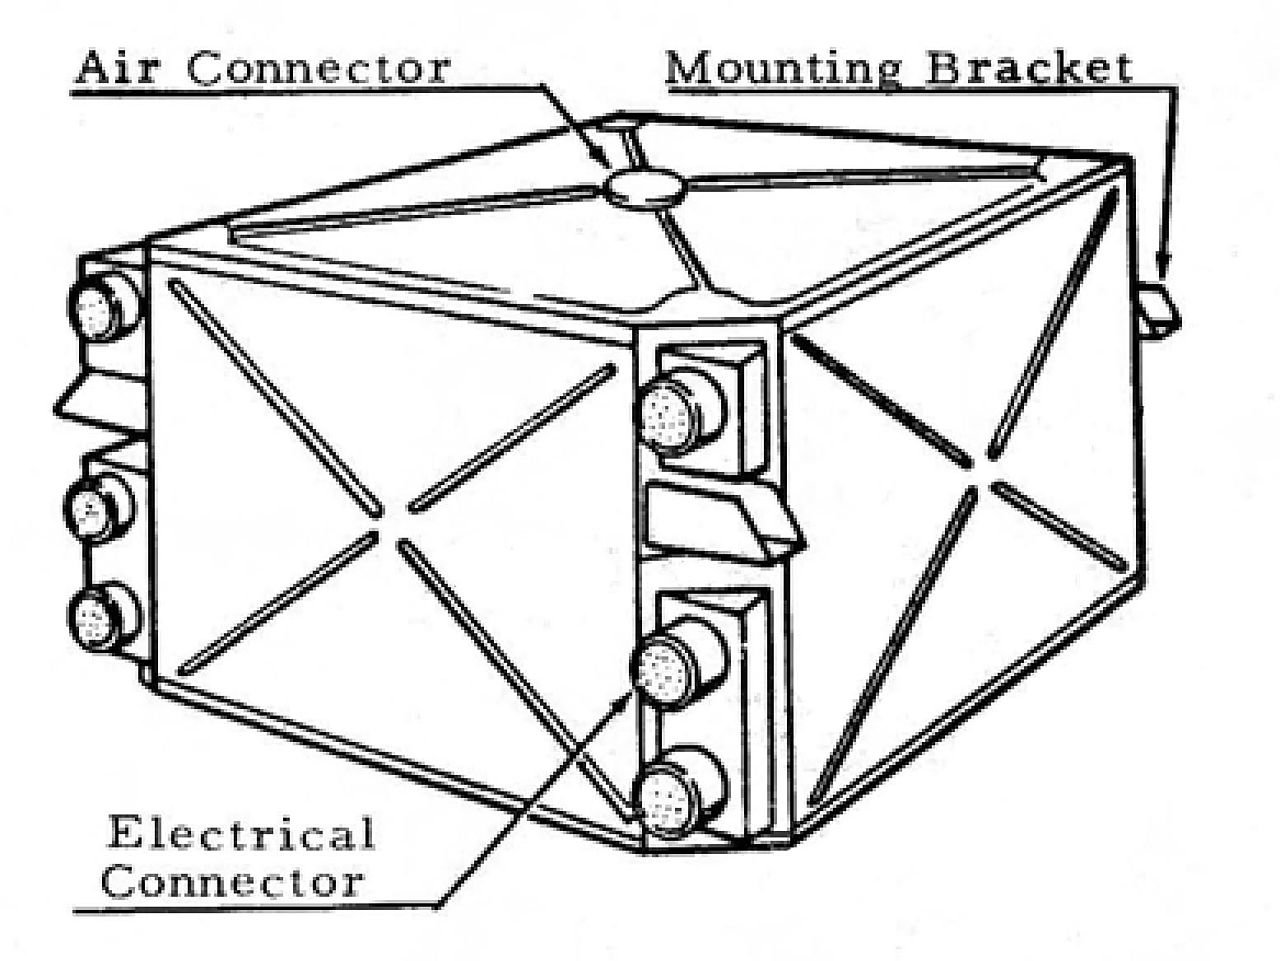 File:Drawing of the Missile Guidance Computer used on